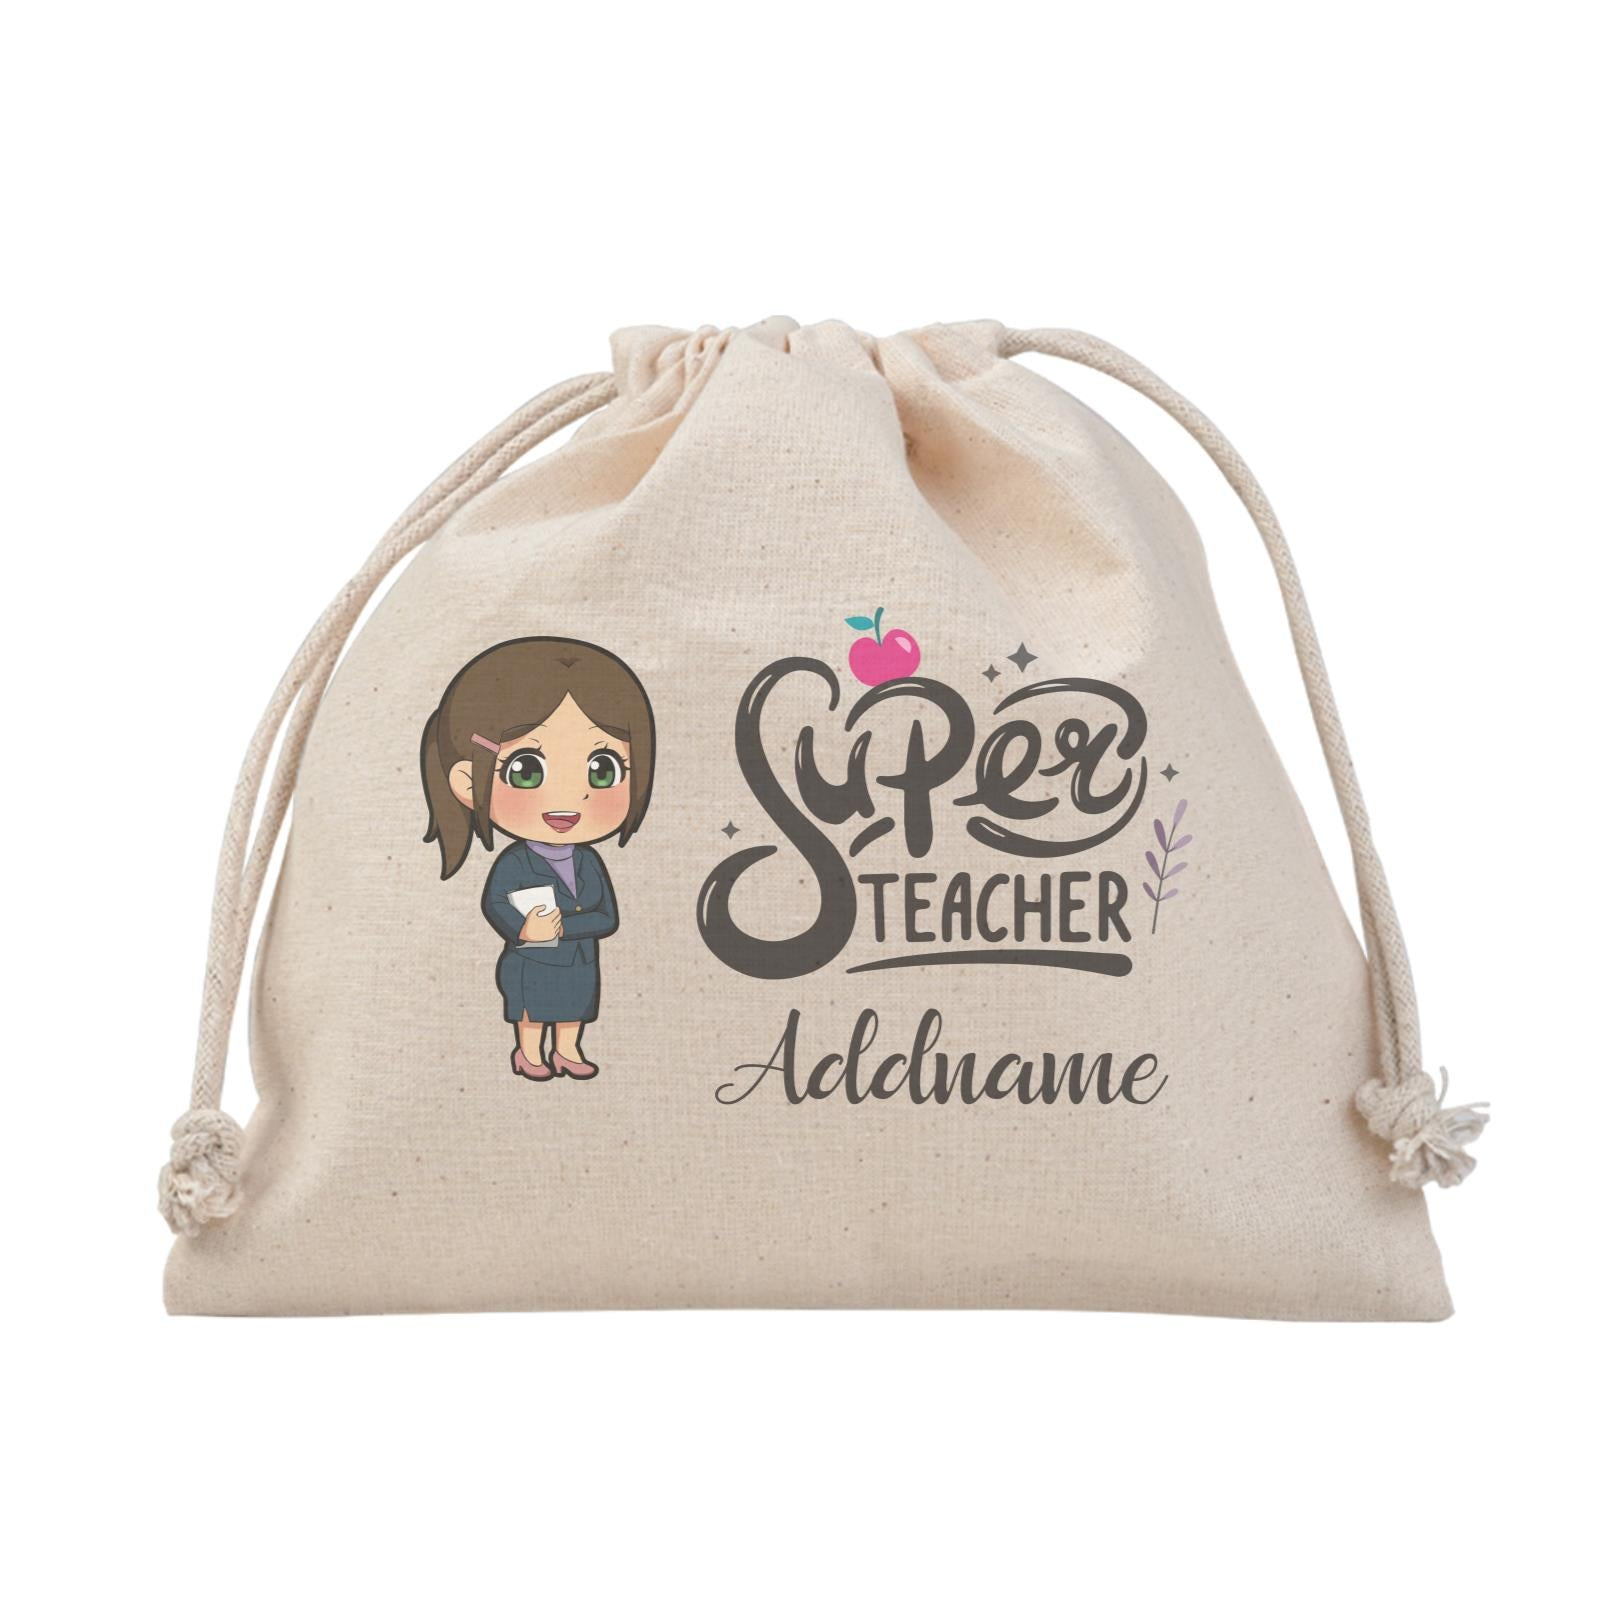 Chibi Super Teacher Chinese Female Teacher Satchel